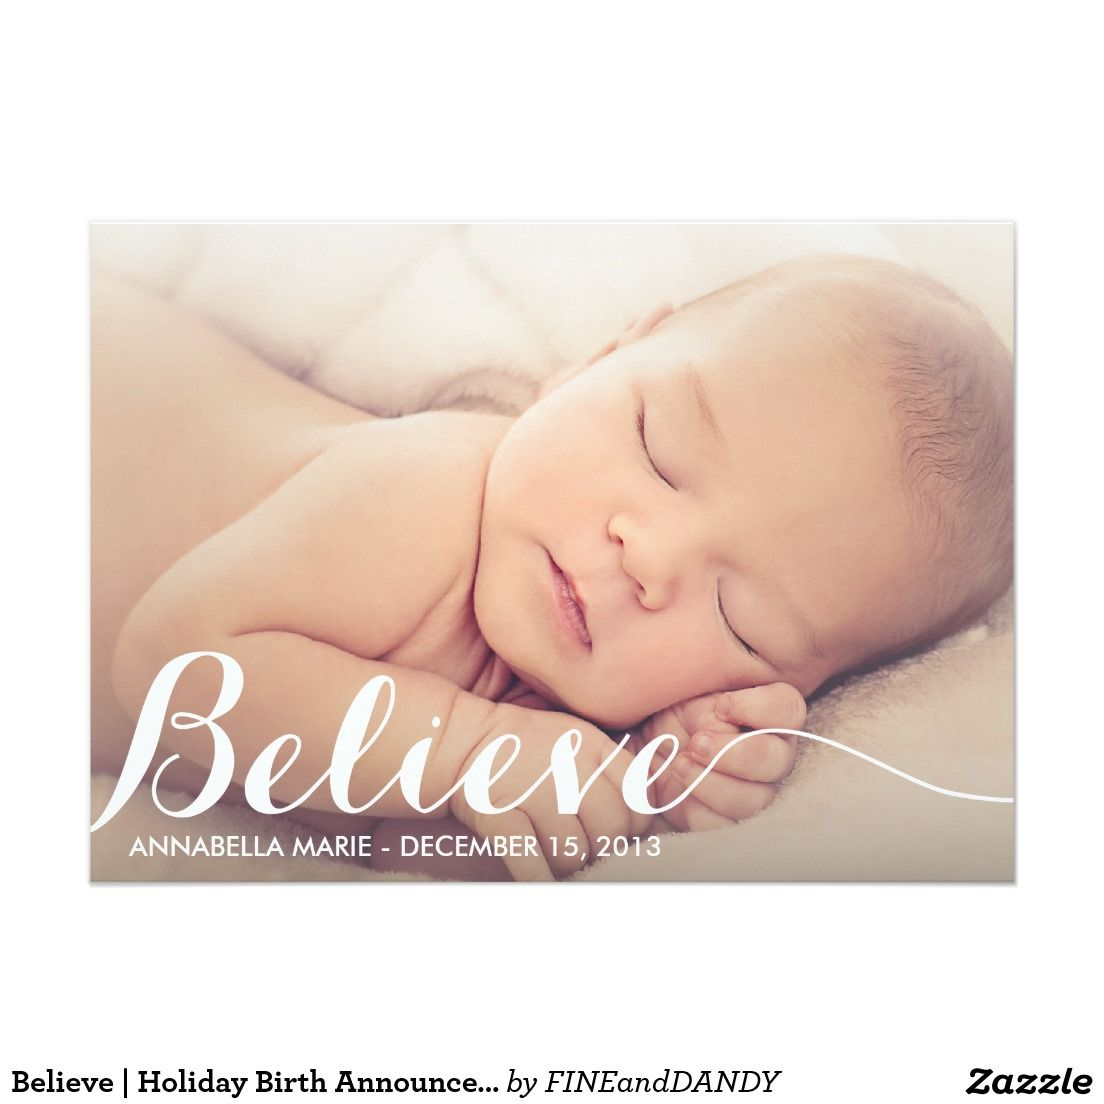 Believe holiday birth announcement